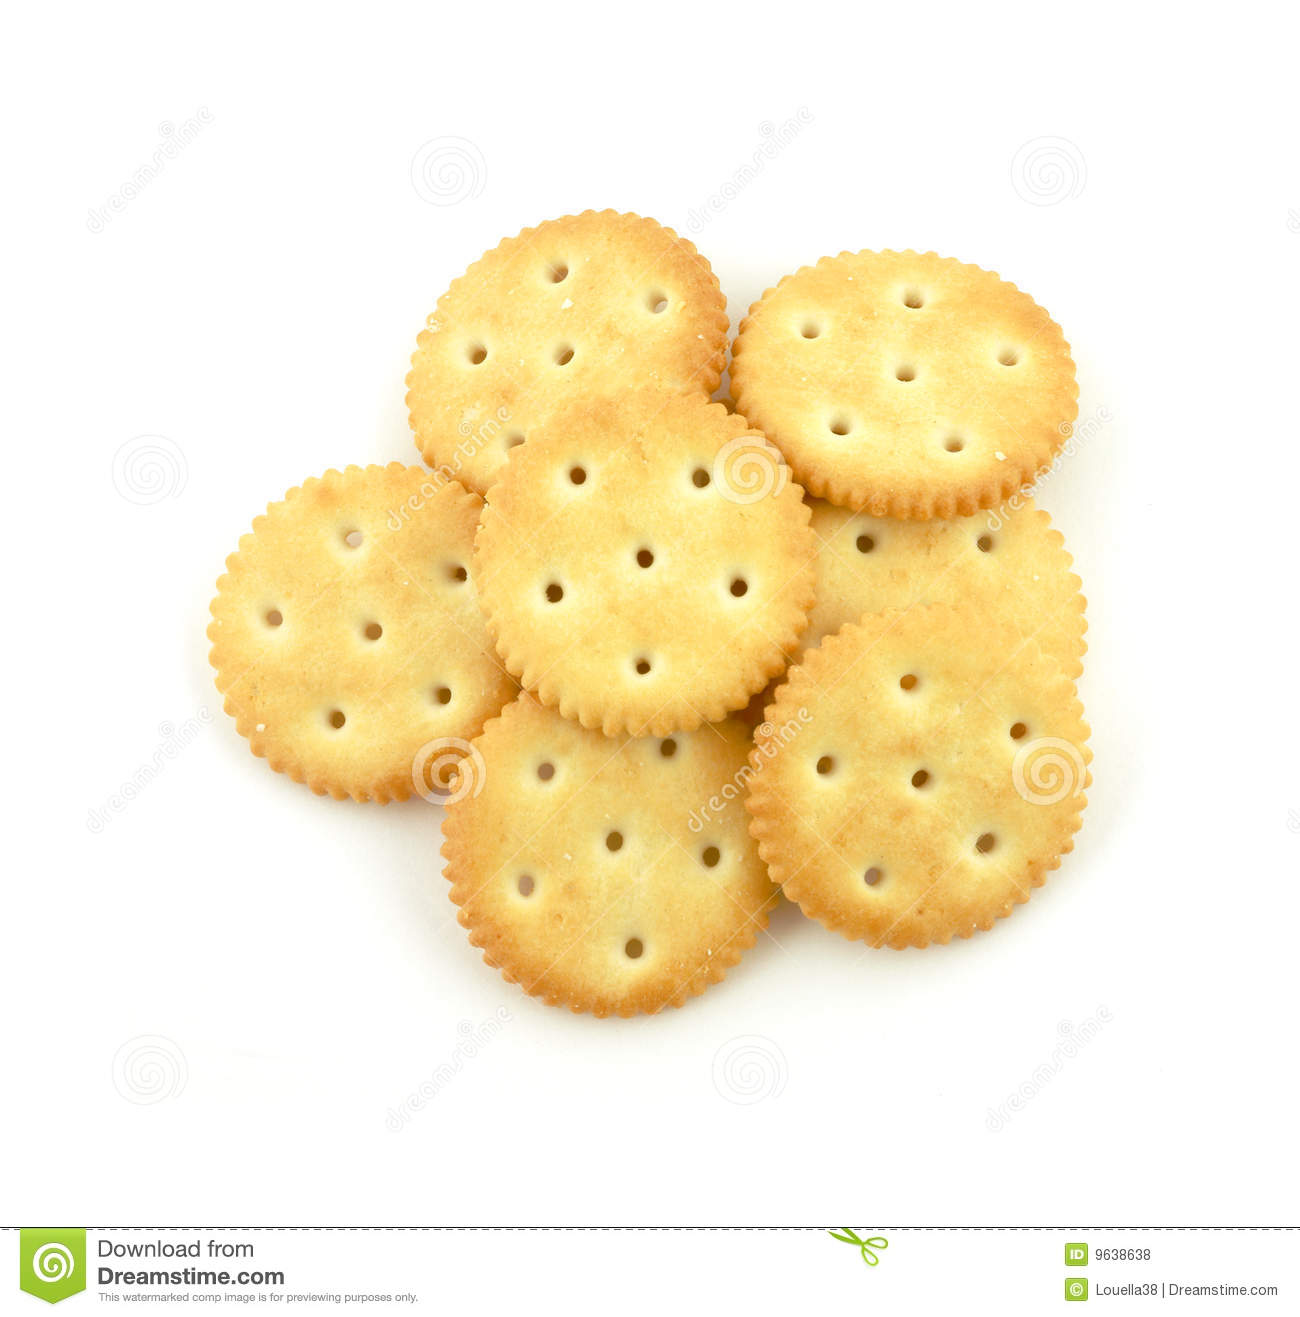 how to give up rice crackers